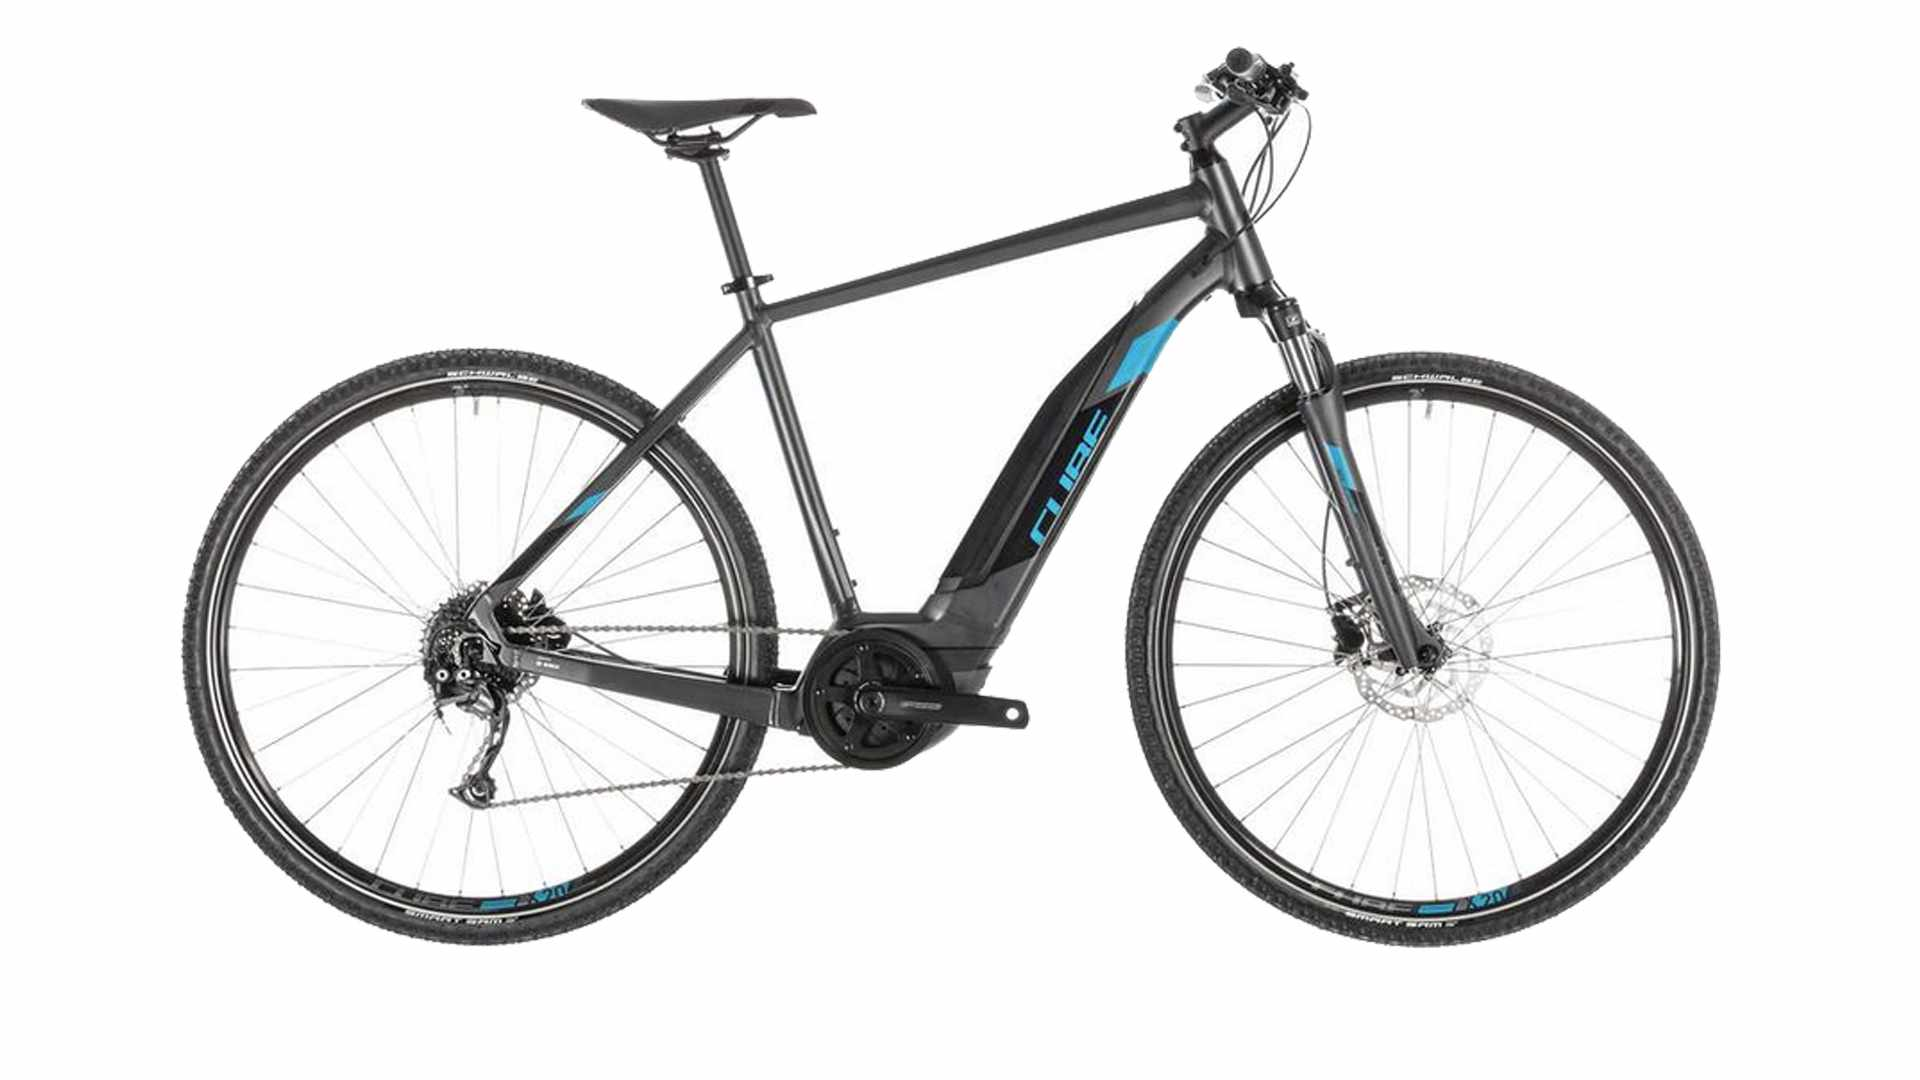 A black and blue electric bike on a white background